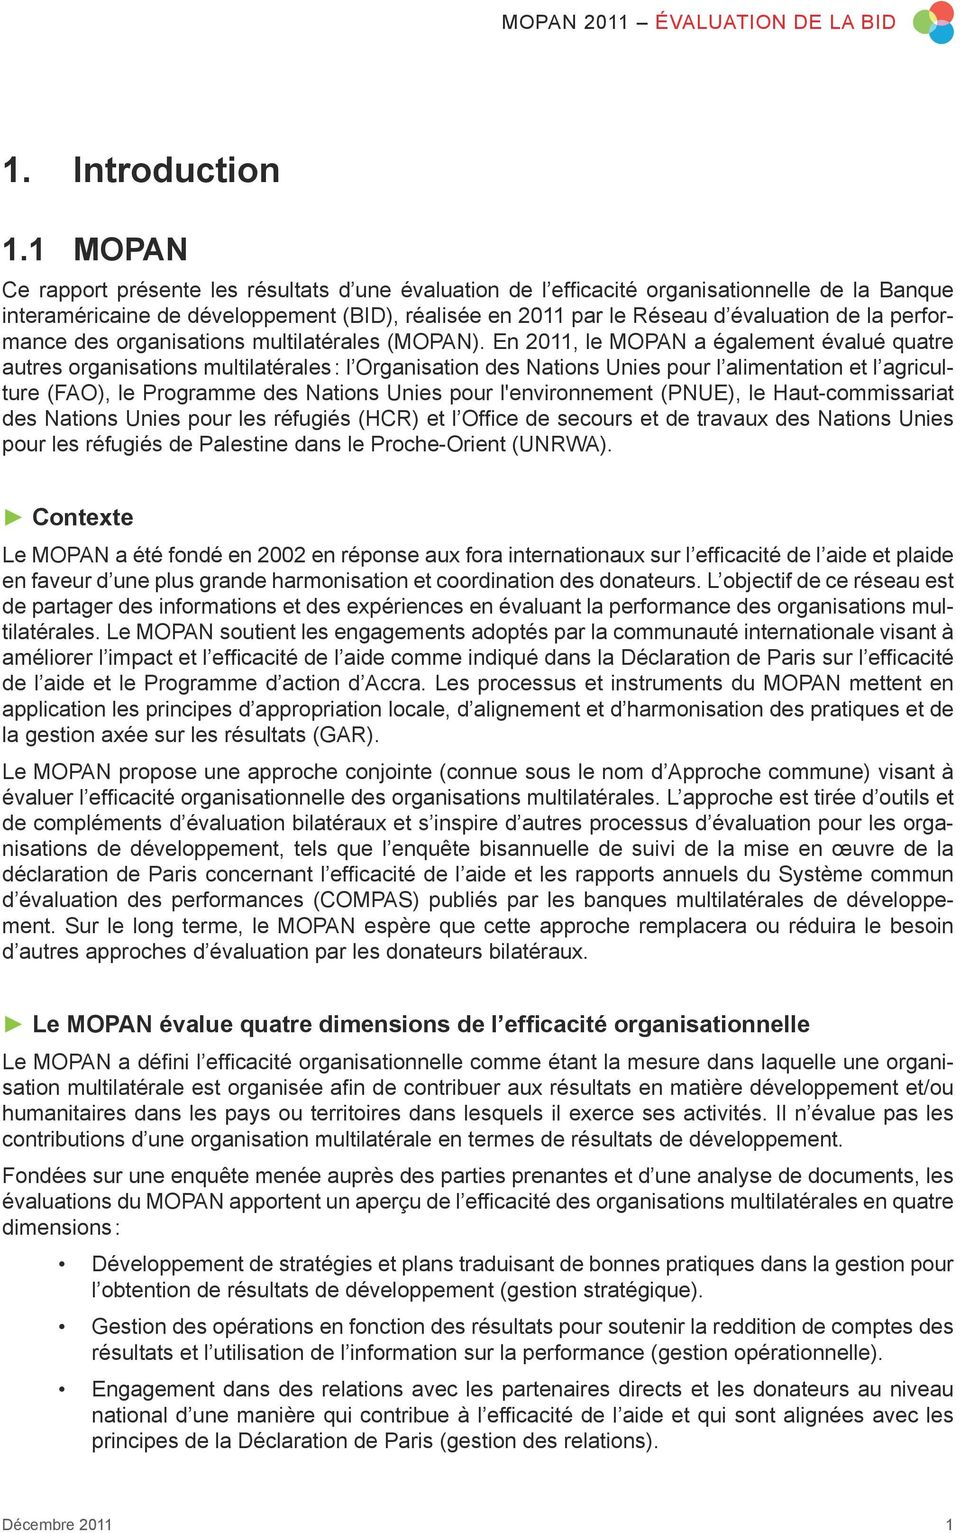 performance des organisations multilatérales (MOPAN).